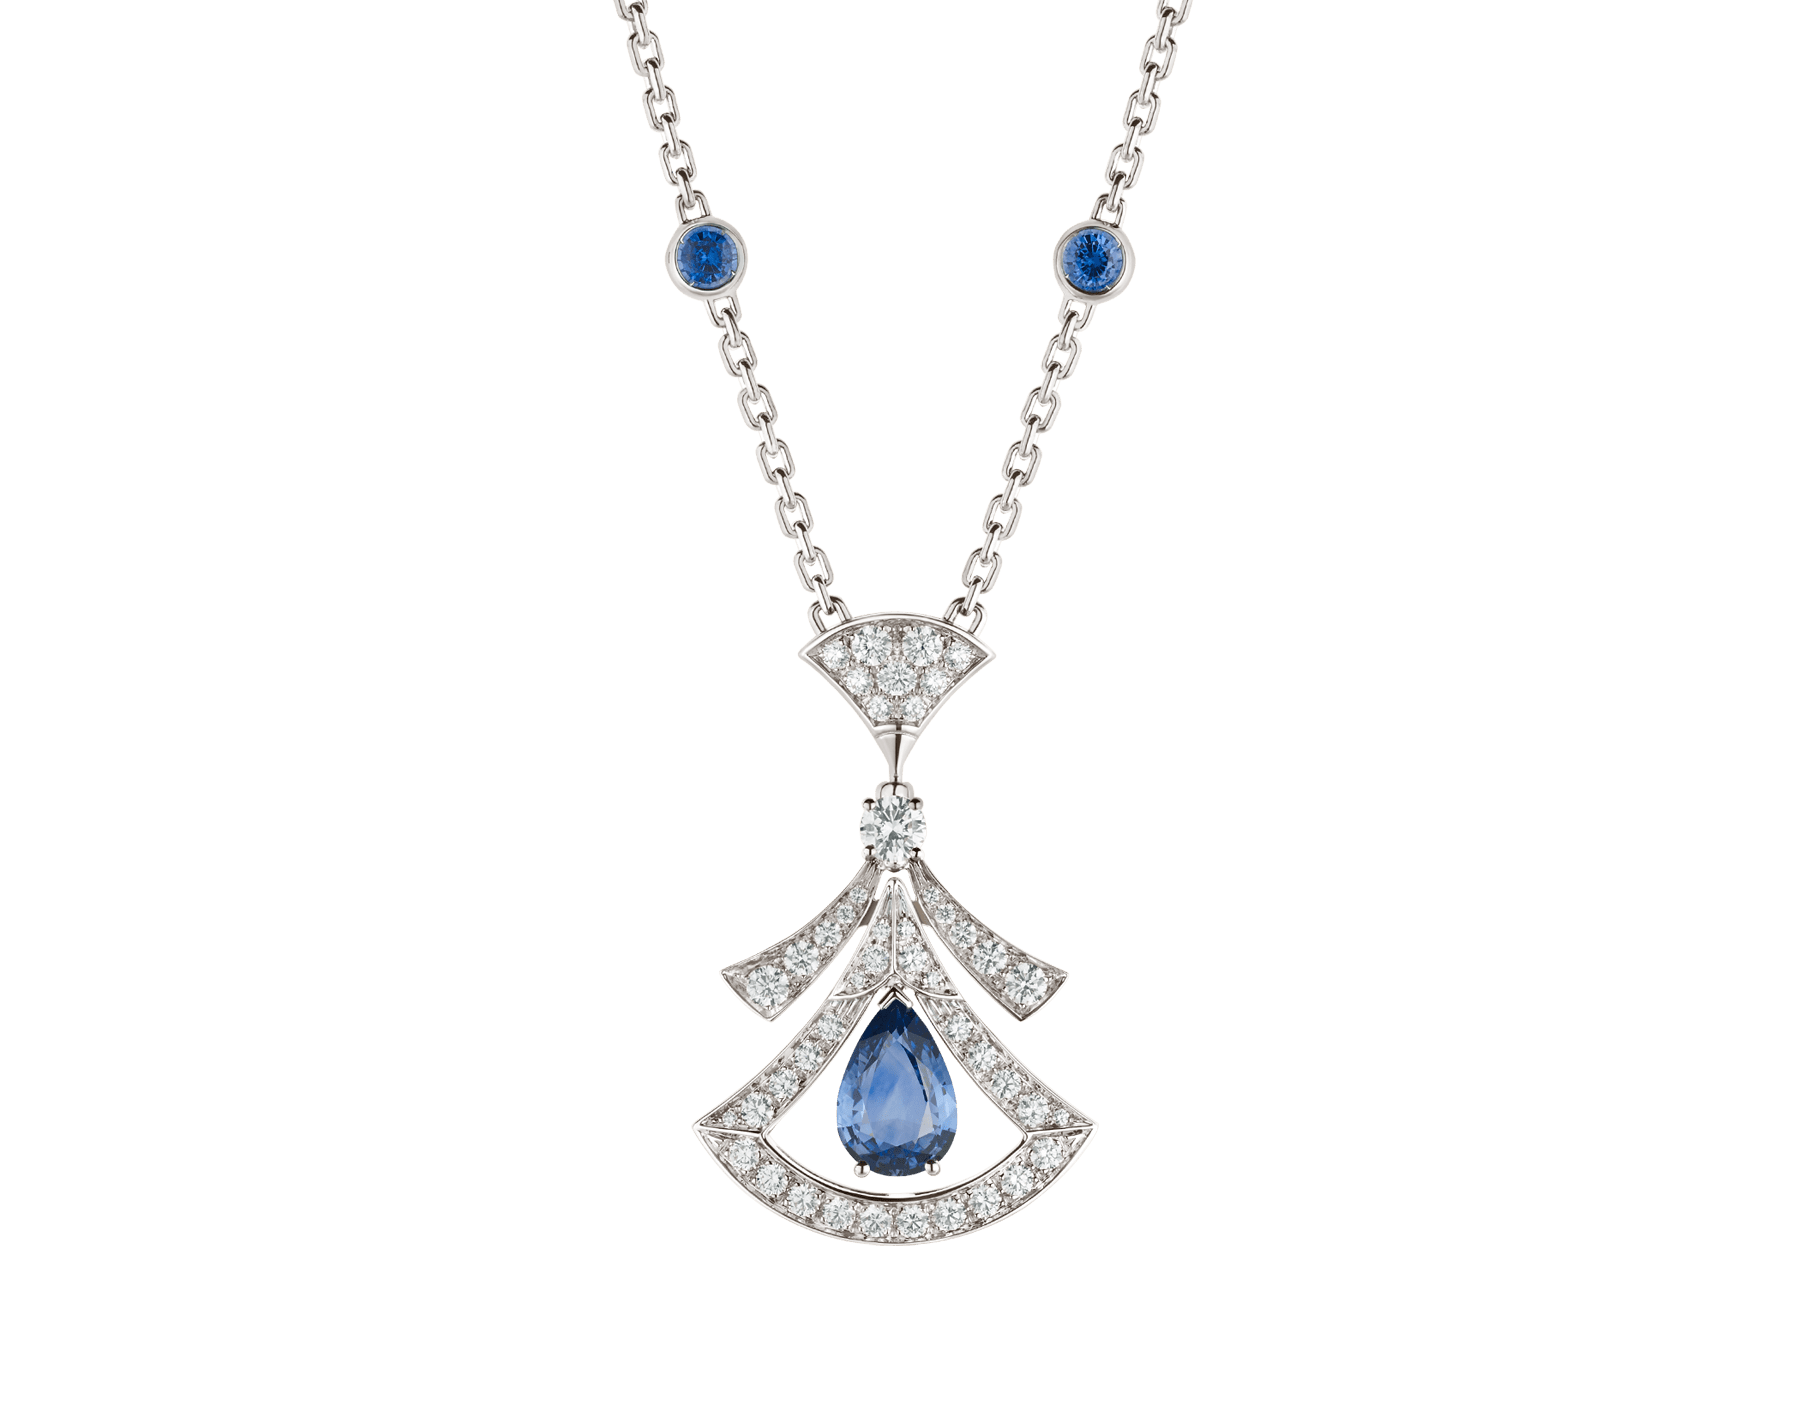 DIVAS' DREAM 18 kt white gold openwork necklace set with a pear-shaped sapphire, round brilliant-cut sapphires, a round brilliant-cut diamond and pavé diamonds. 357325 image 1